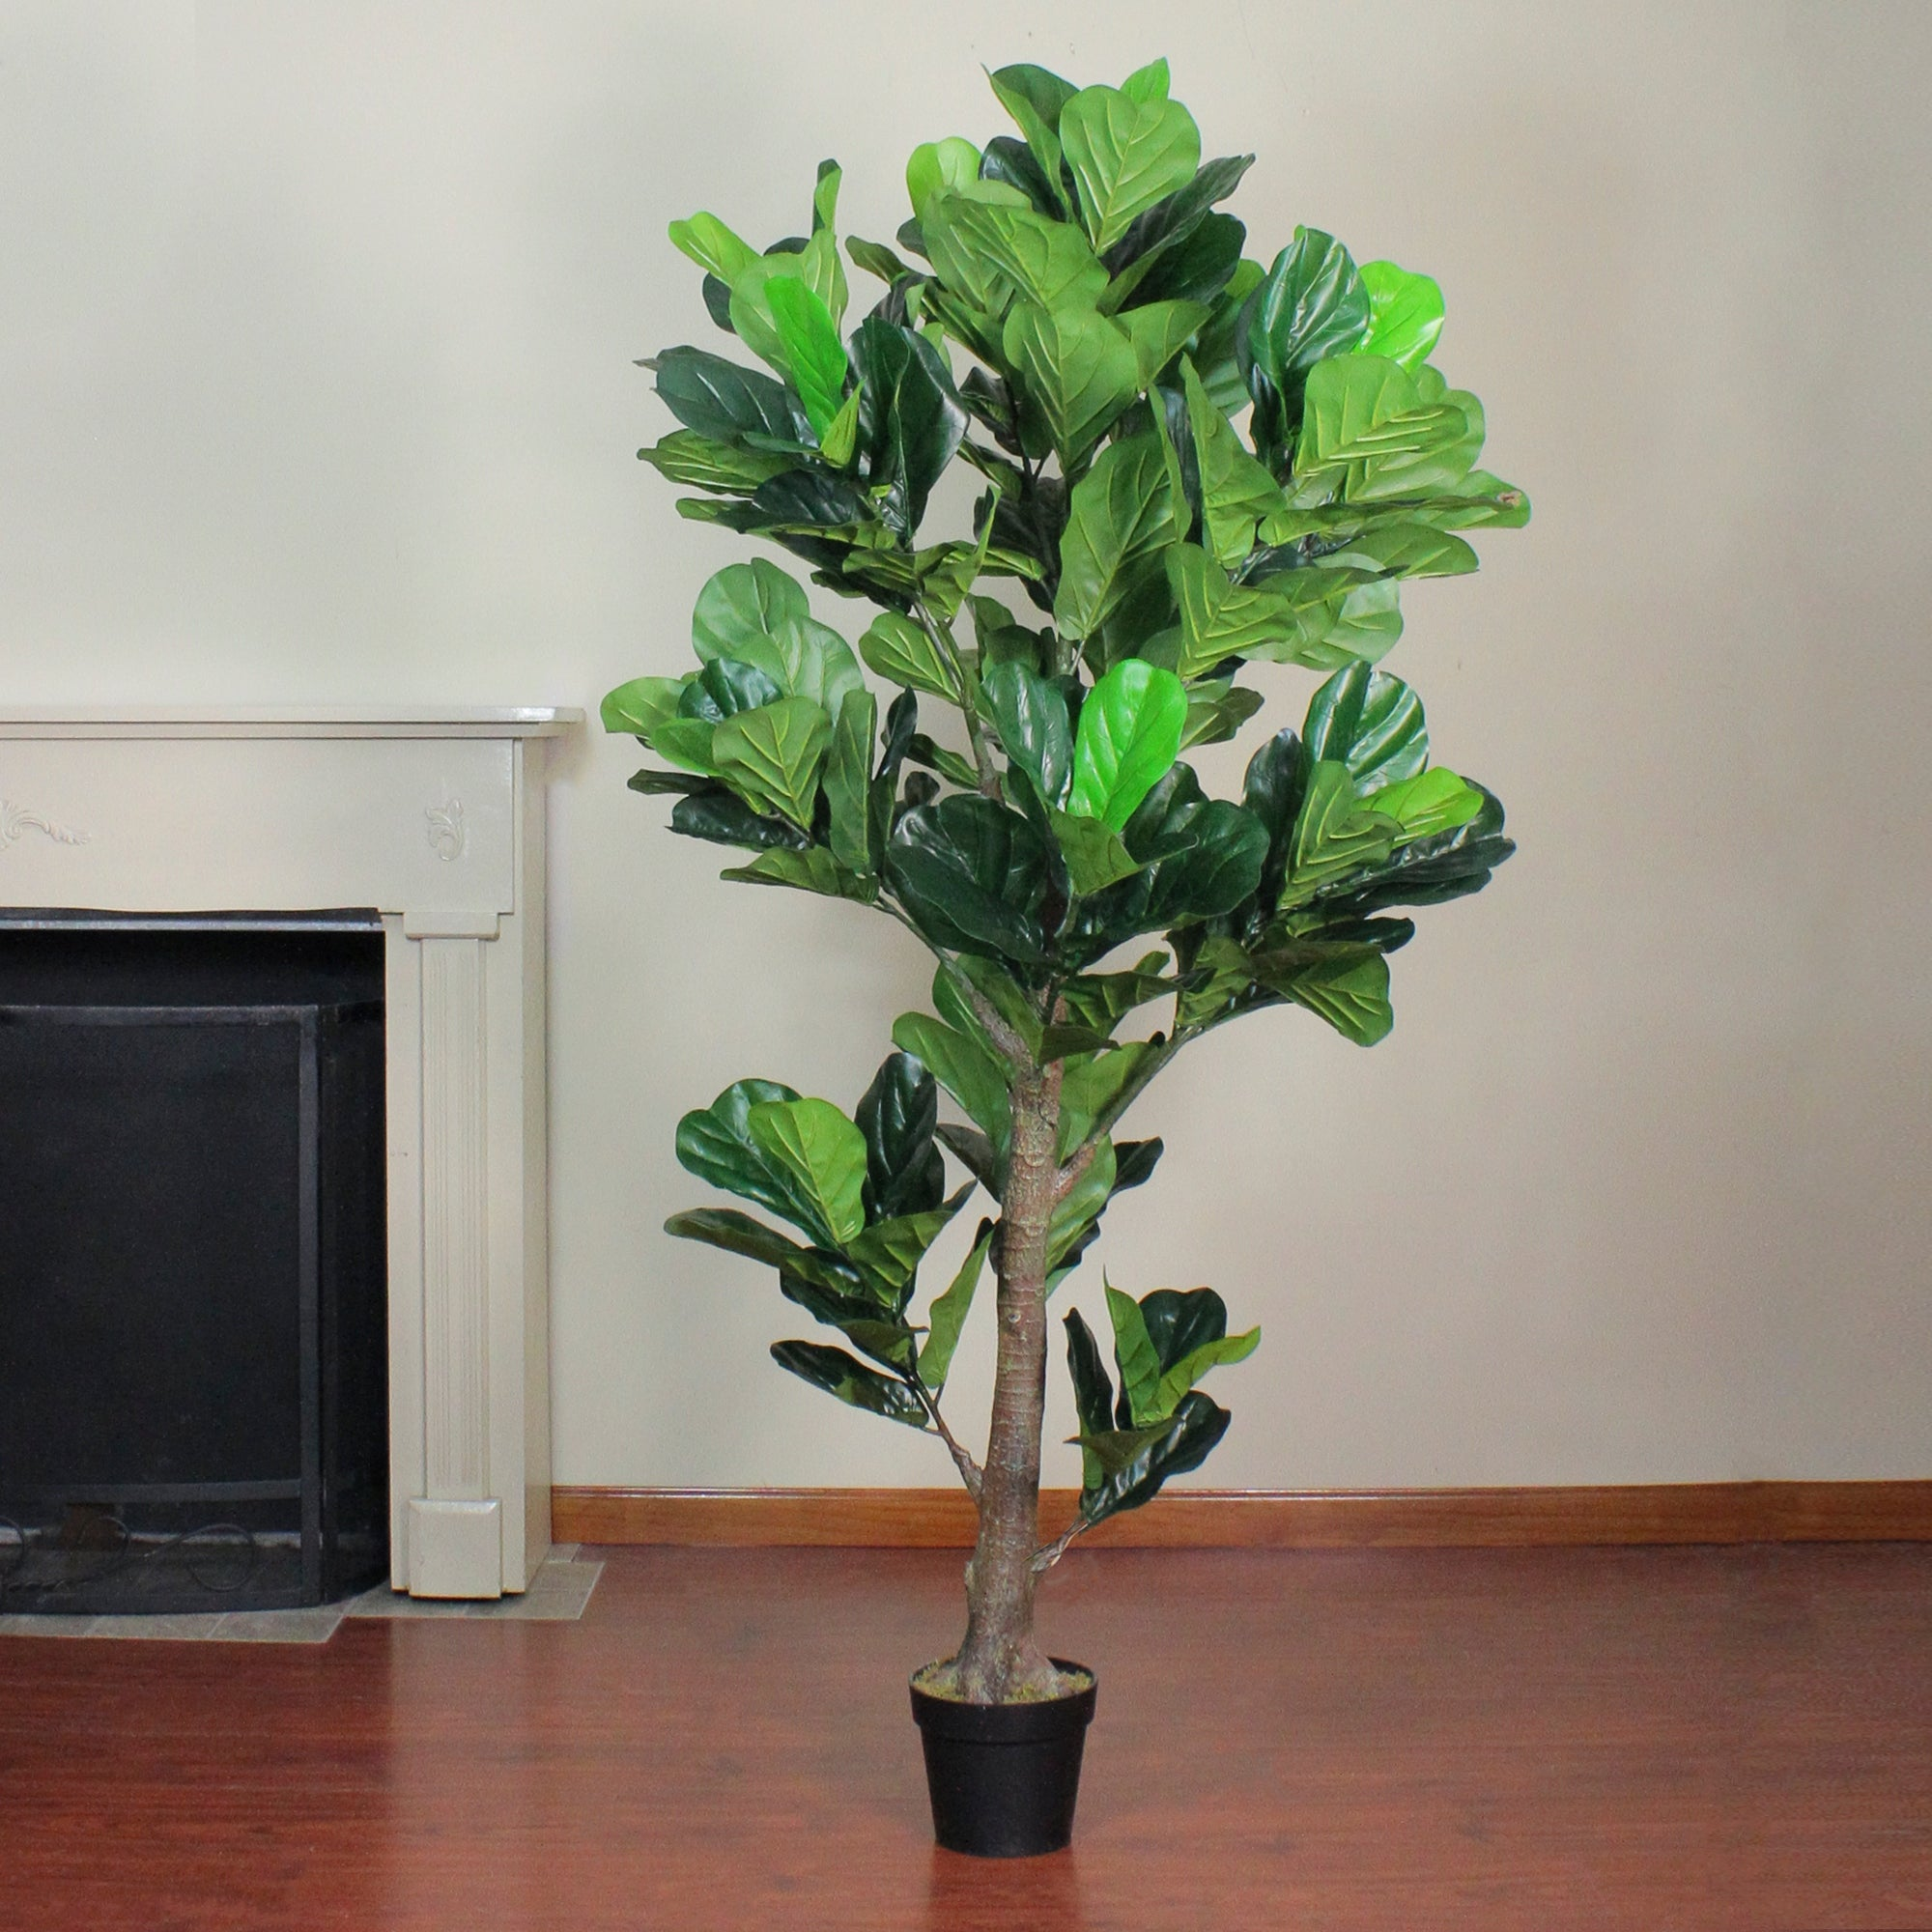 6 1 Potted Green Artificial Fiddle Leaf Fig Tree Unlit Overstock 29197889